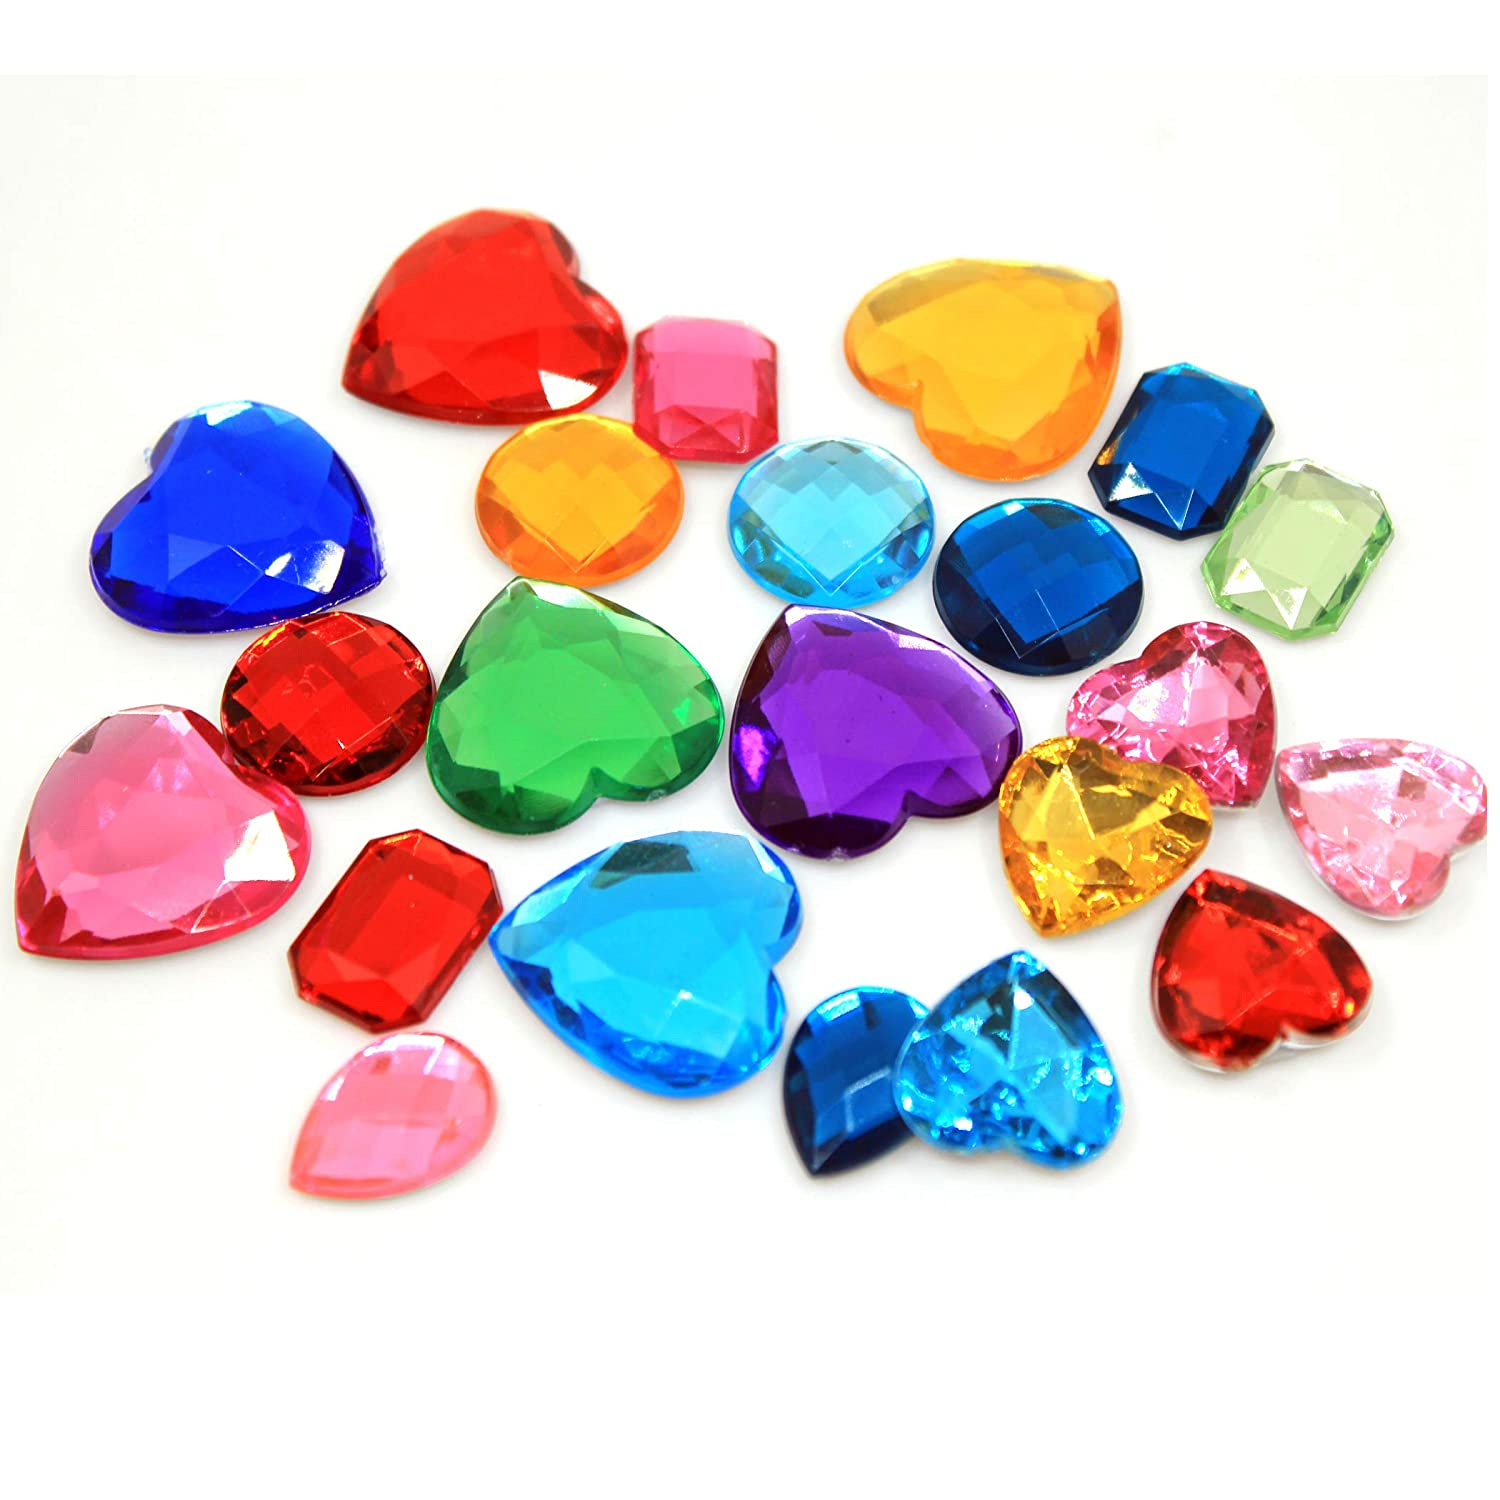 Self Adhesive Craft Jewels Bling Crystal Gem Stickers Assorted Shapes Colors Rhinestone Stickers for Arts & Crafts Projects Pack of 110 Little Koala